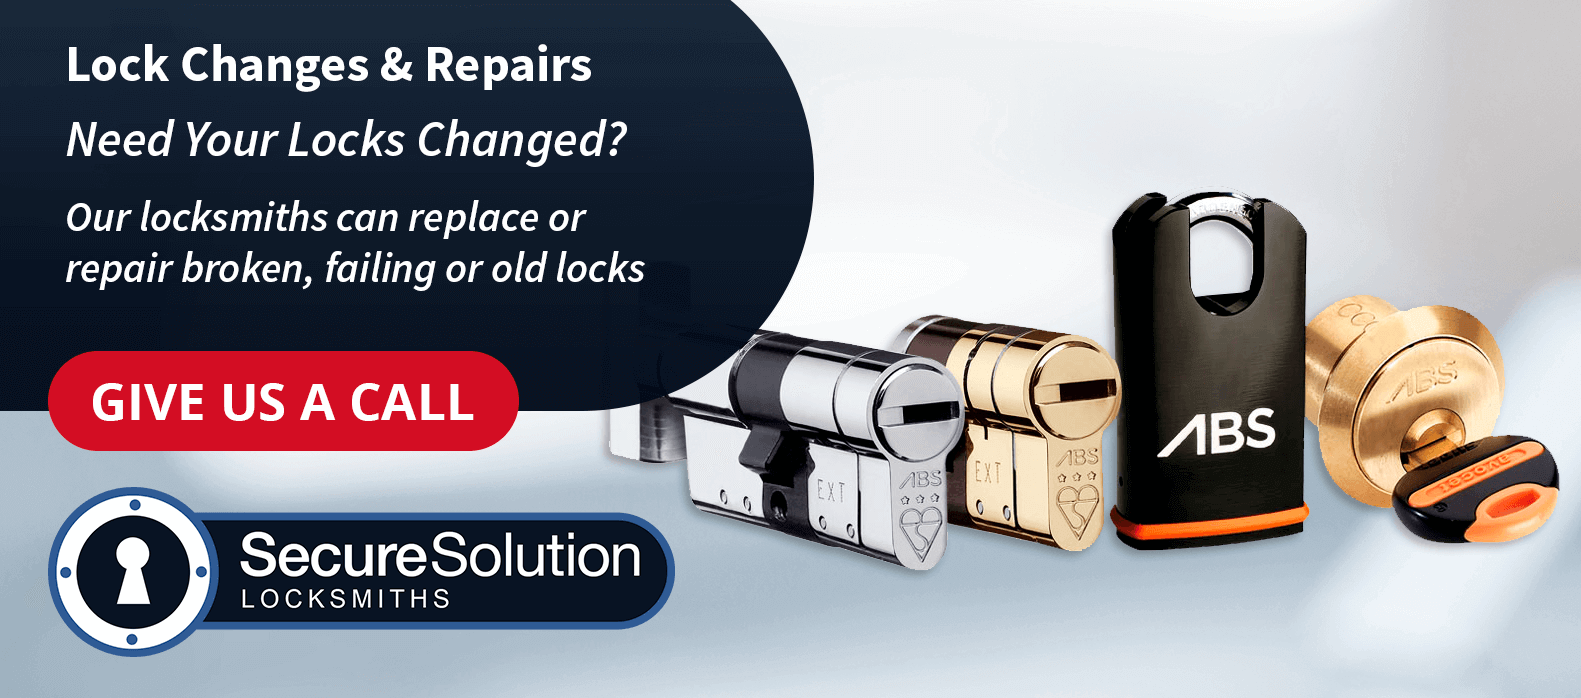 lock repairs leeds - ss locksmiths